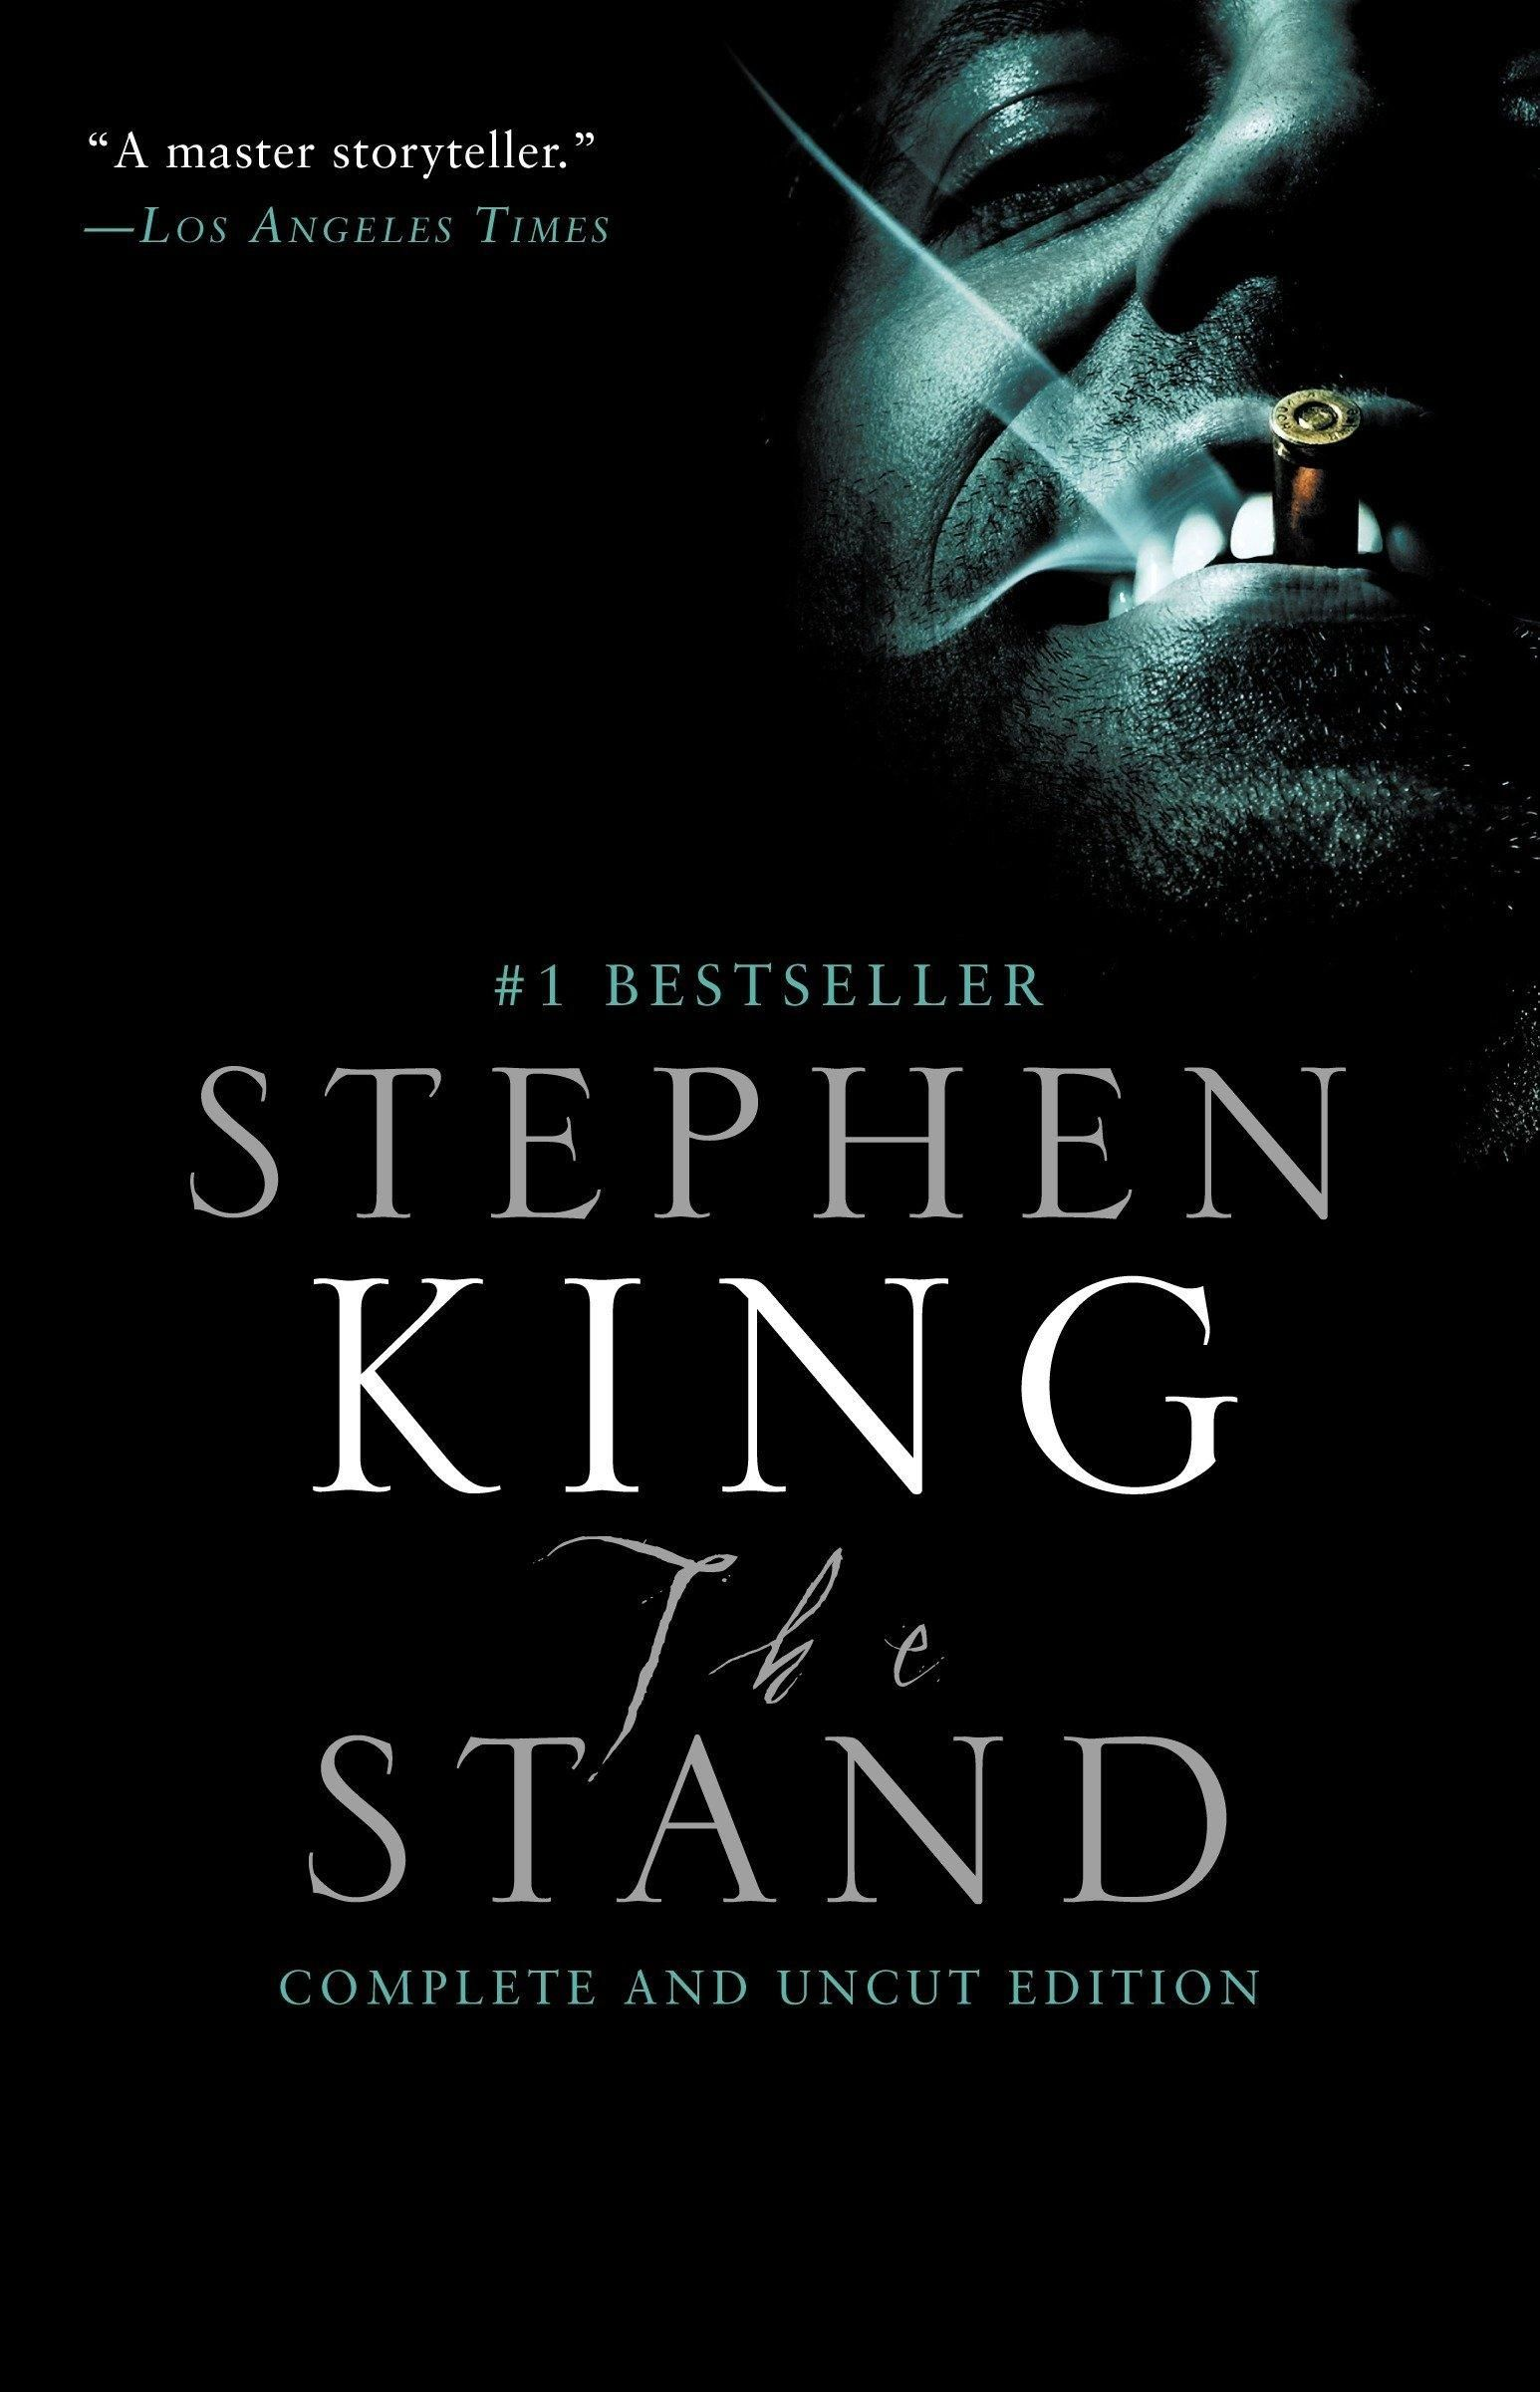 Full Download The Stand Populer Ebook In 2020 Stephen King Stephen King Books The Stand Movie